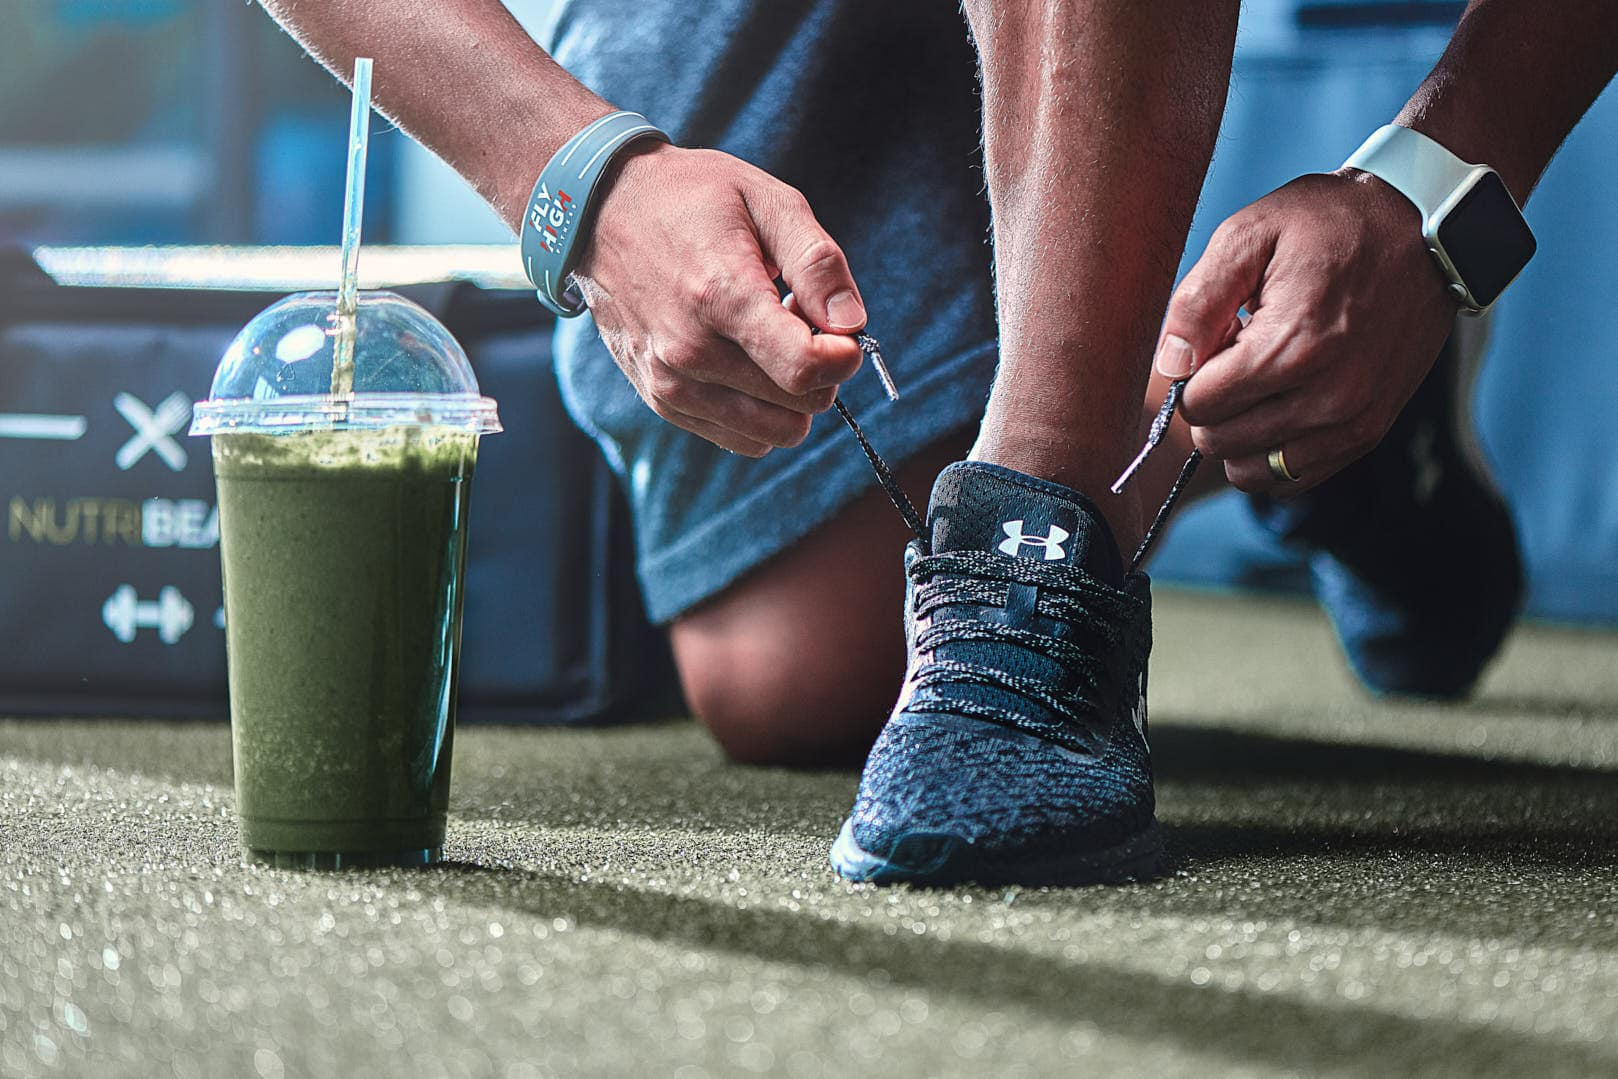 Nutri Beast - Fitness Lifestyle Photography